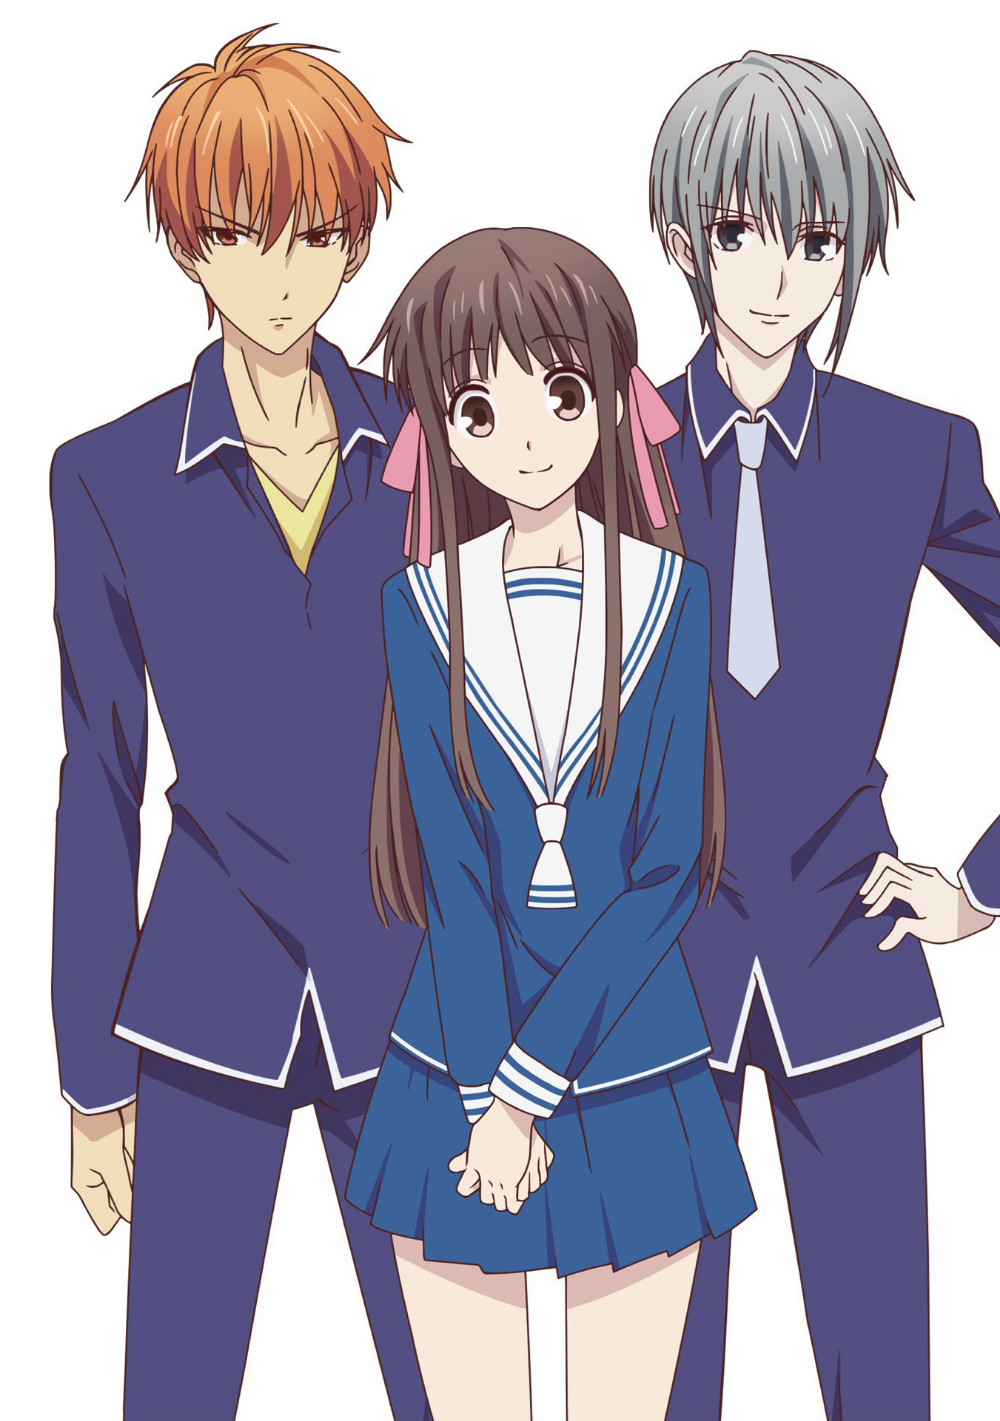 Kyo, Tohru and Yuki Fruits basket, Fruits basket anime